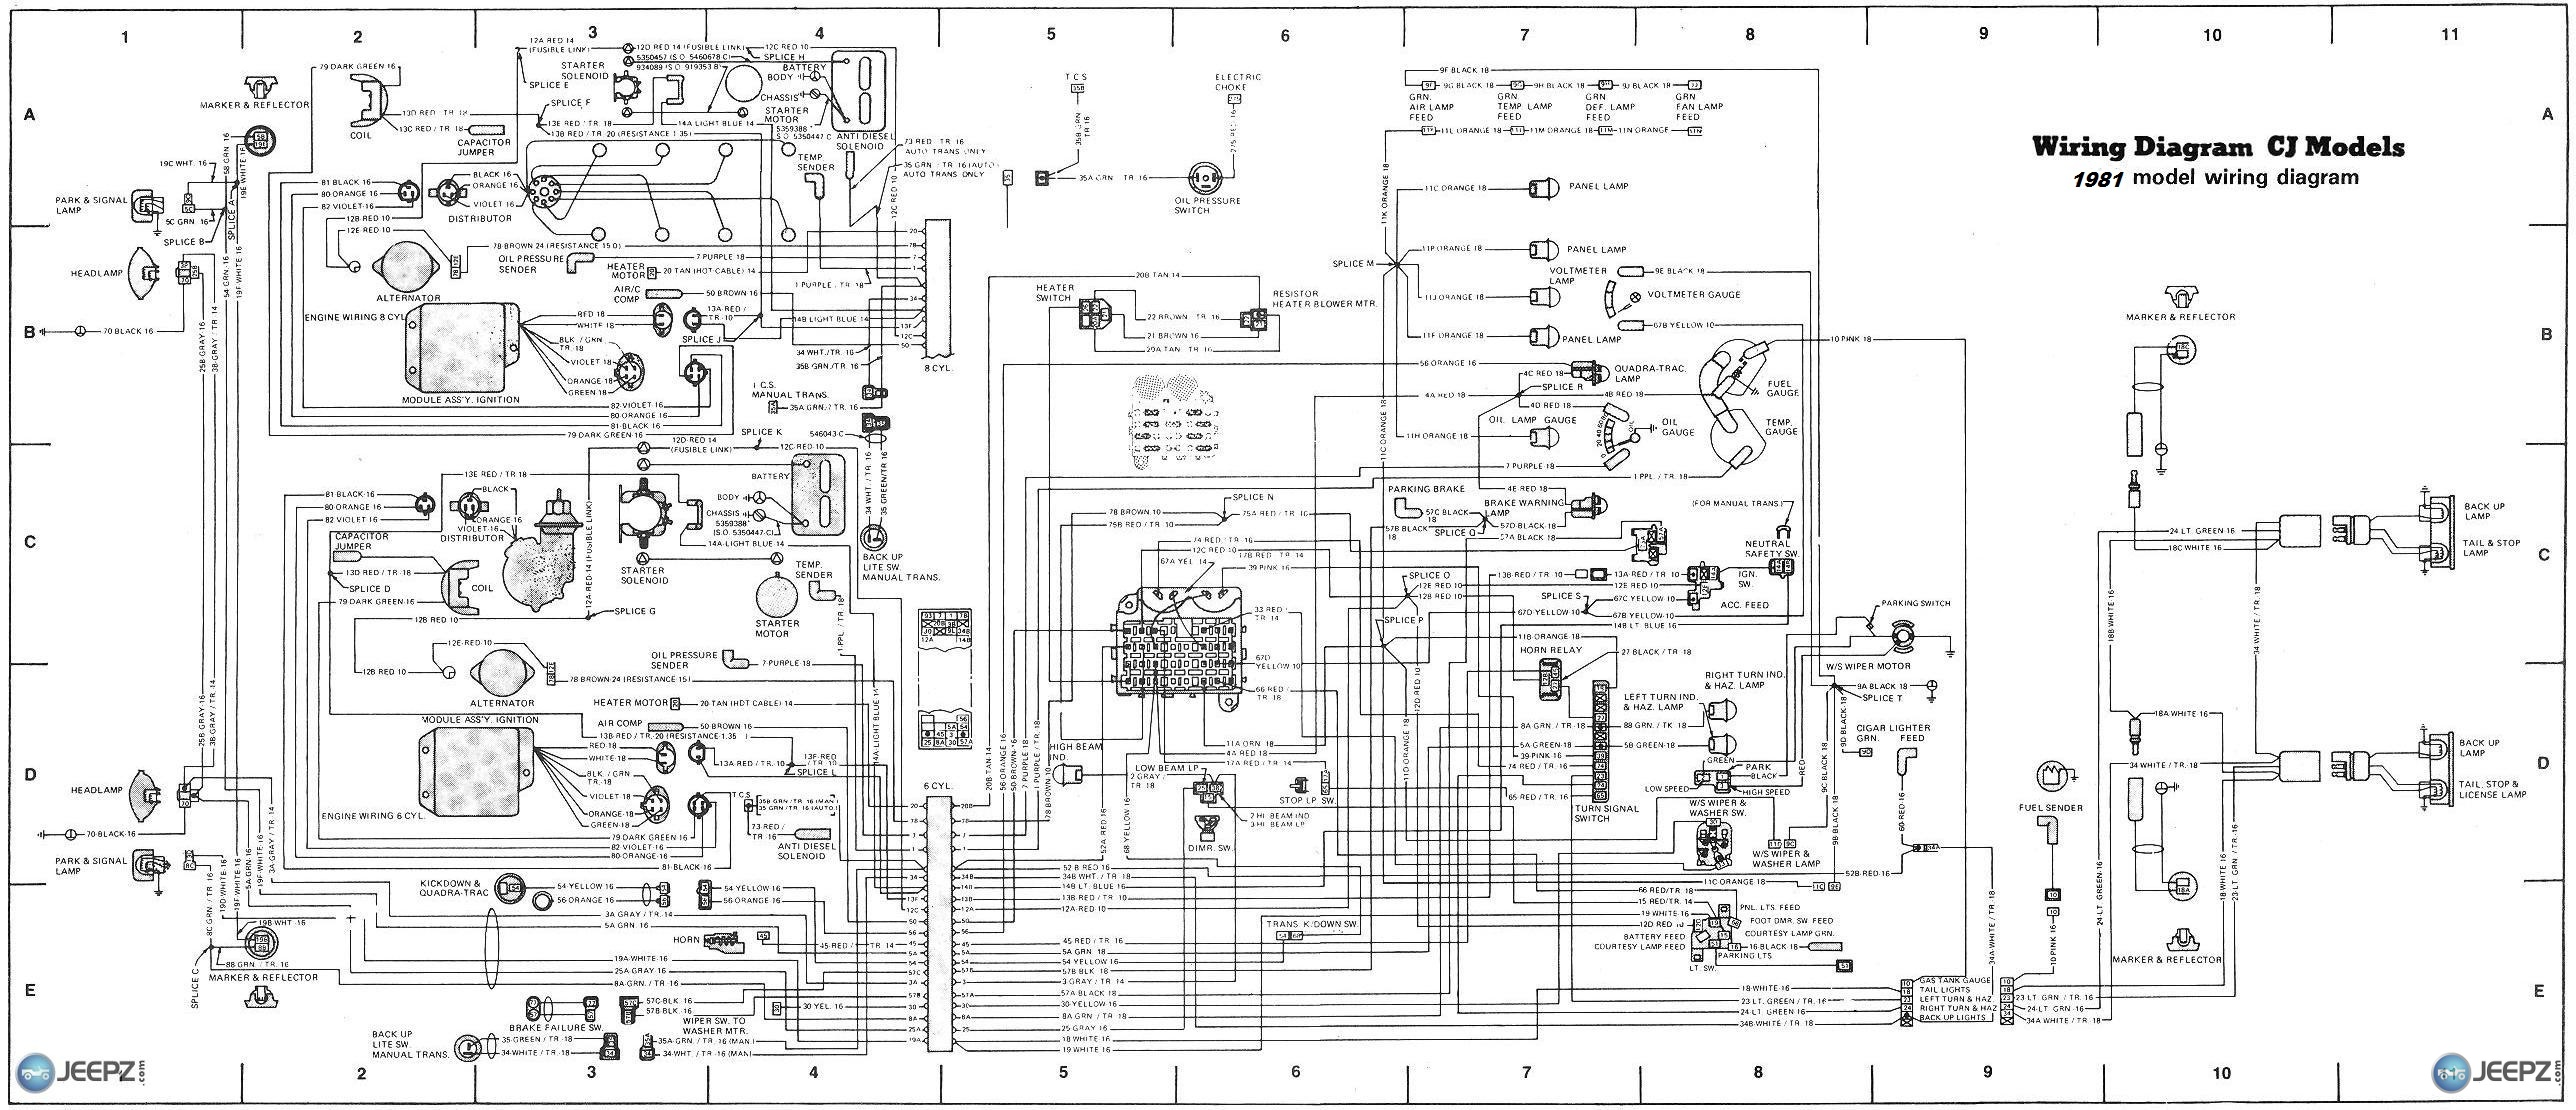 cj 7 wire diagram 1980 Jeep Dash Wiring 1980 Jeep CJ7 Wiring-Diagram